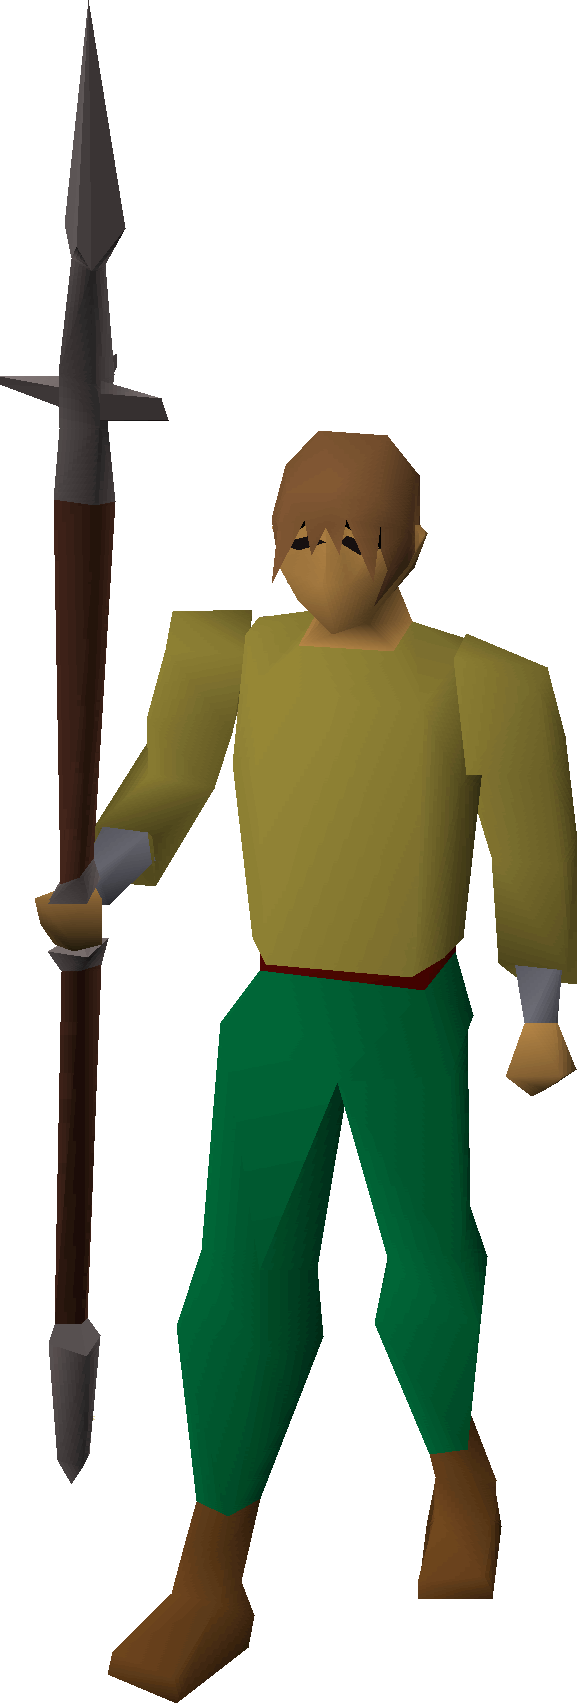 File:Iron hasta equipped.png